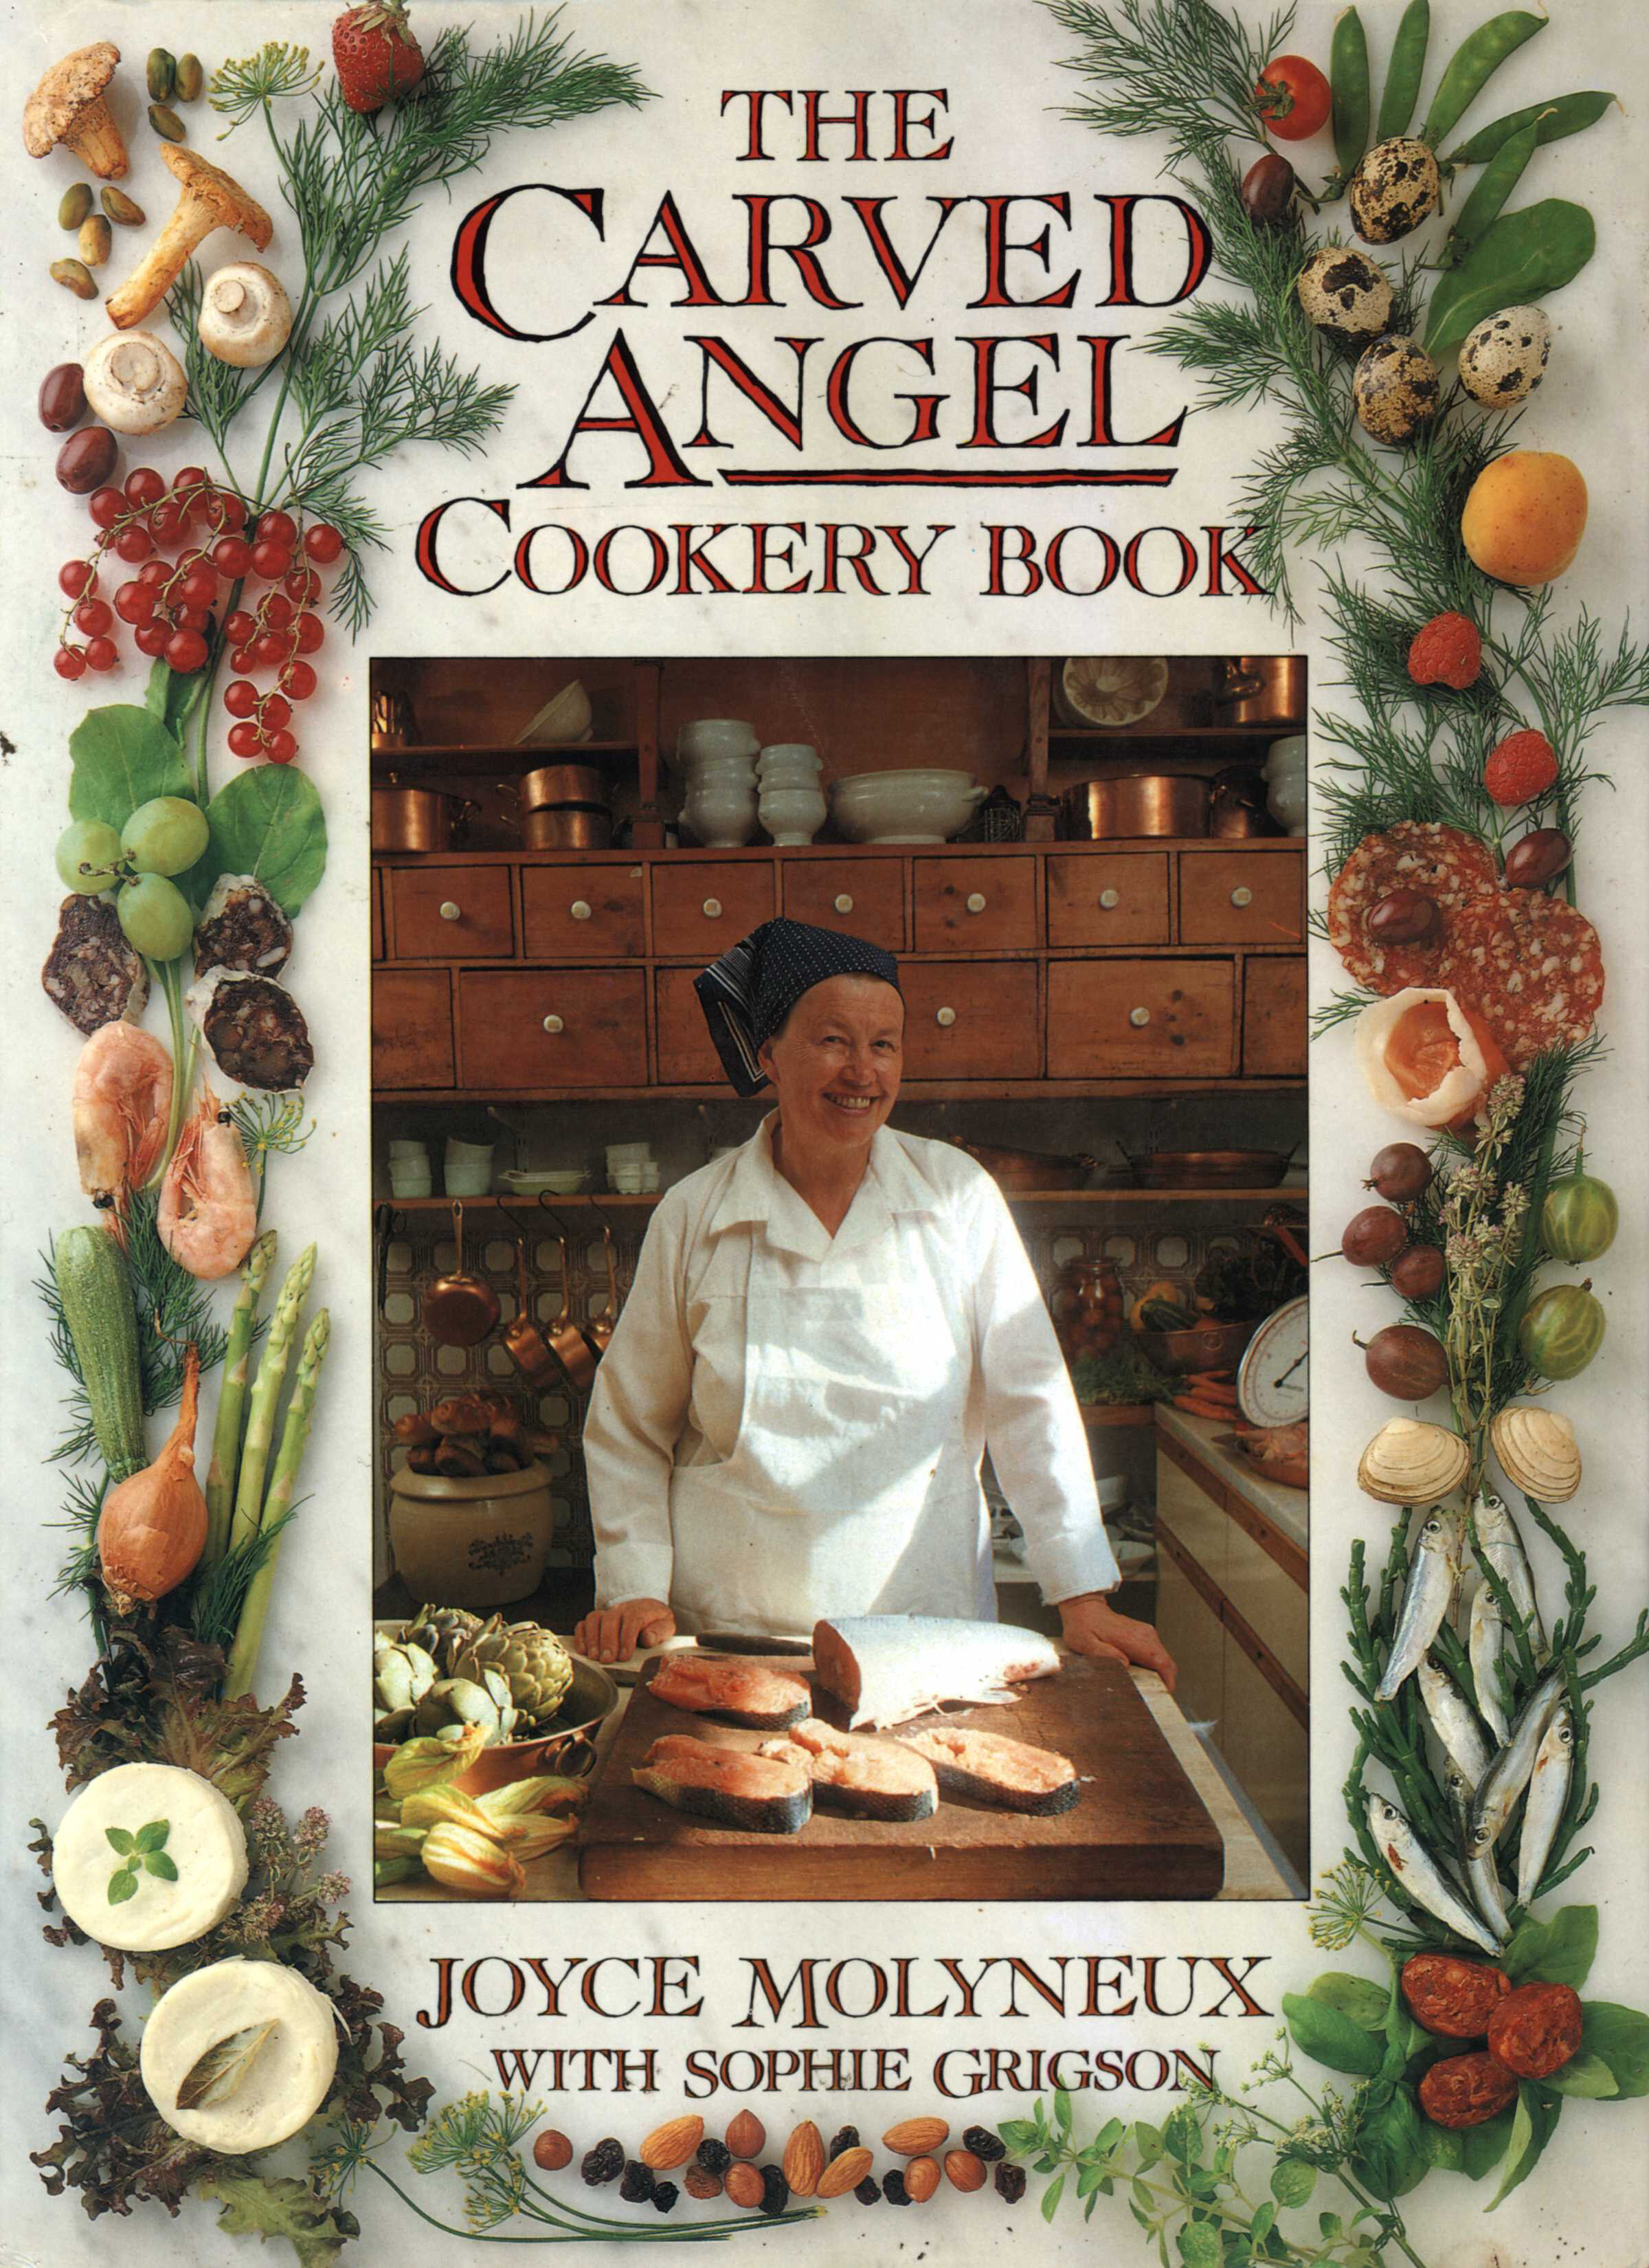 The Carved Angel Cookery Book jacket